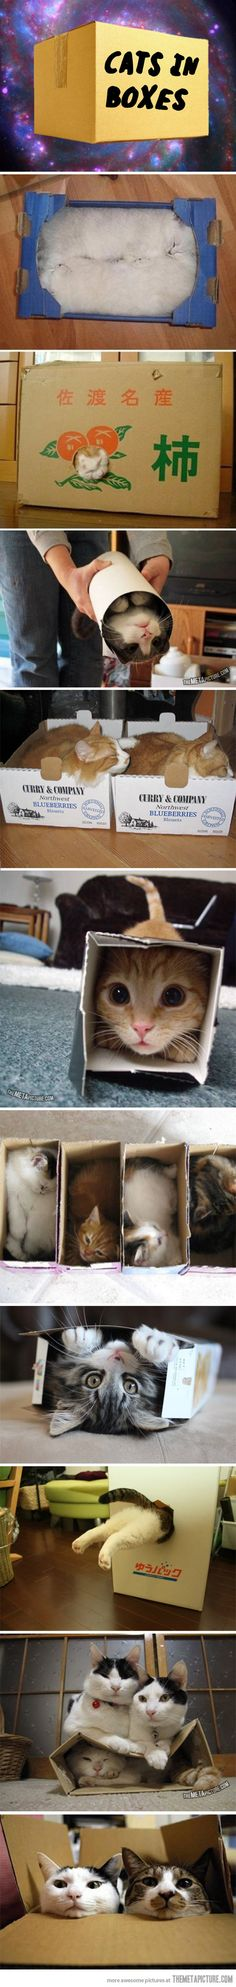 I like cats in boxes!